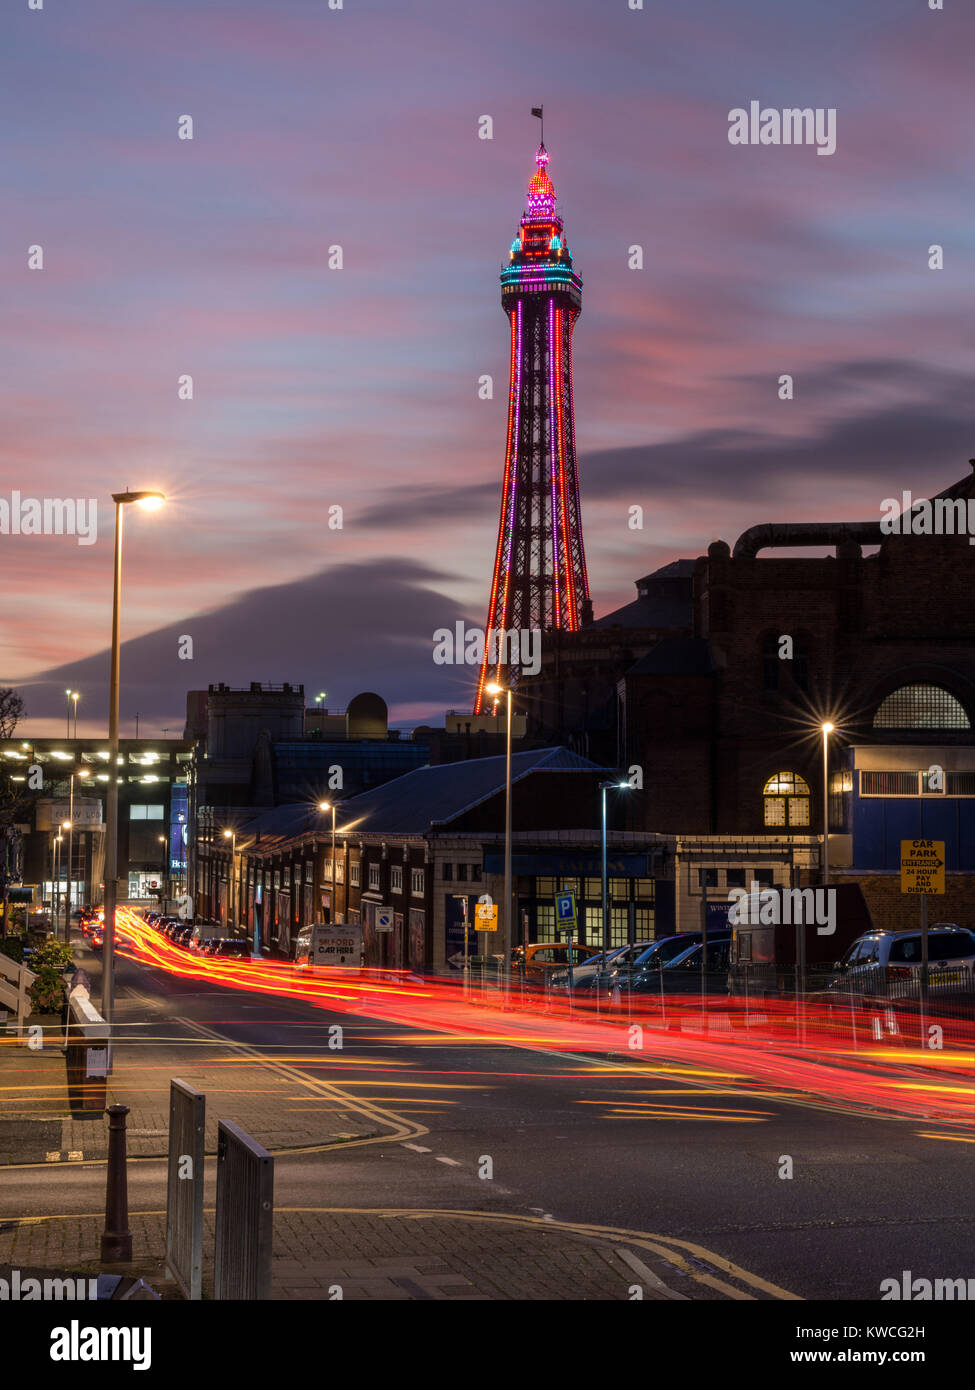 Blackpool Tower lit up at dusk with car light trails in foreground - Stock Image